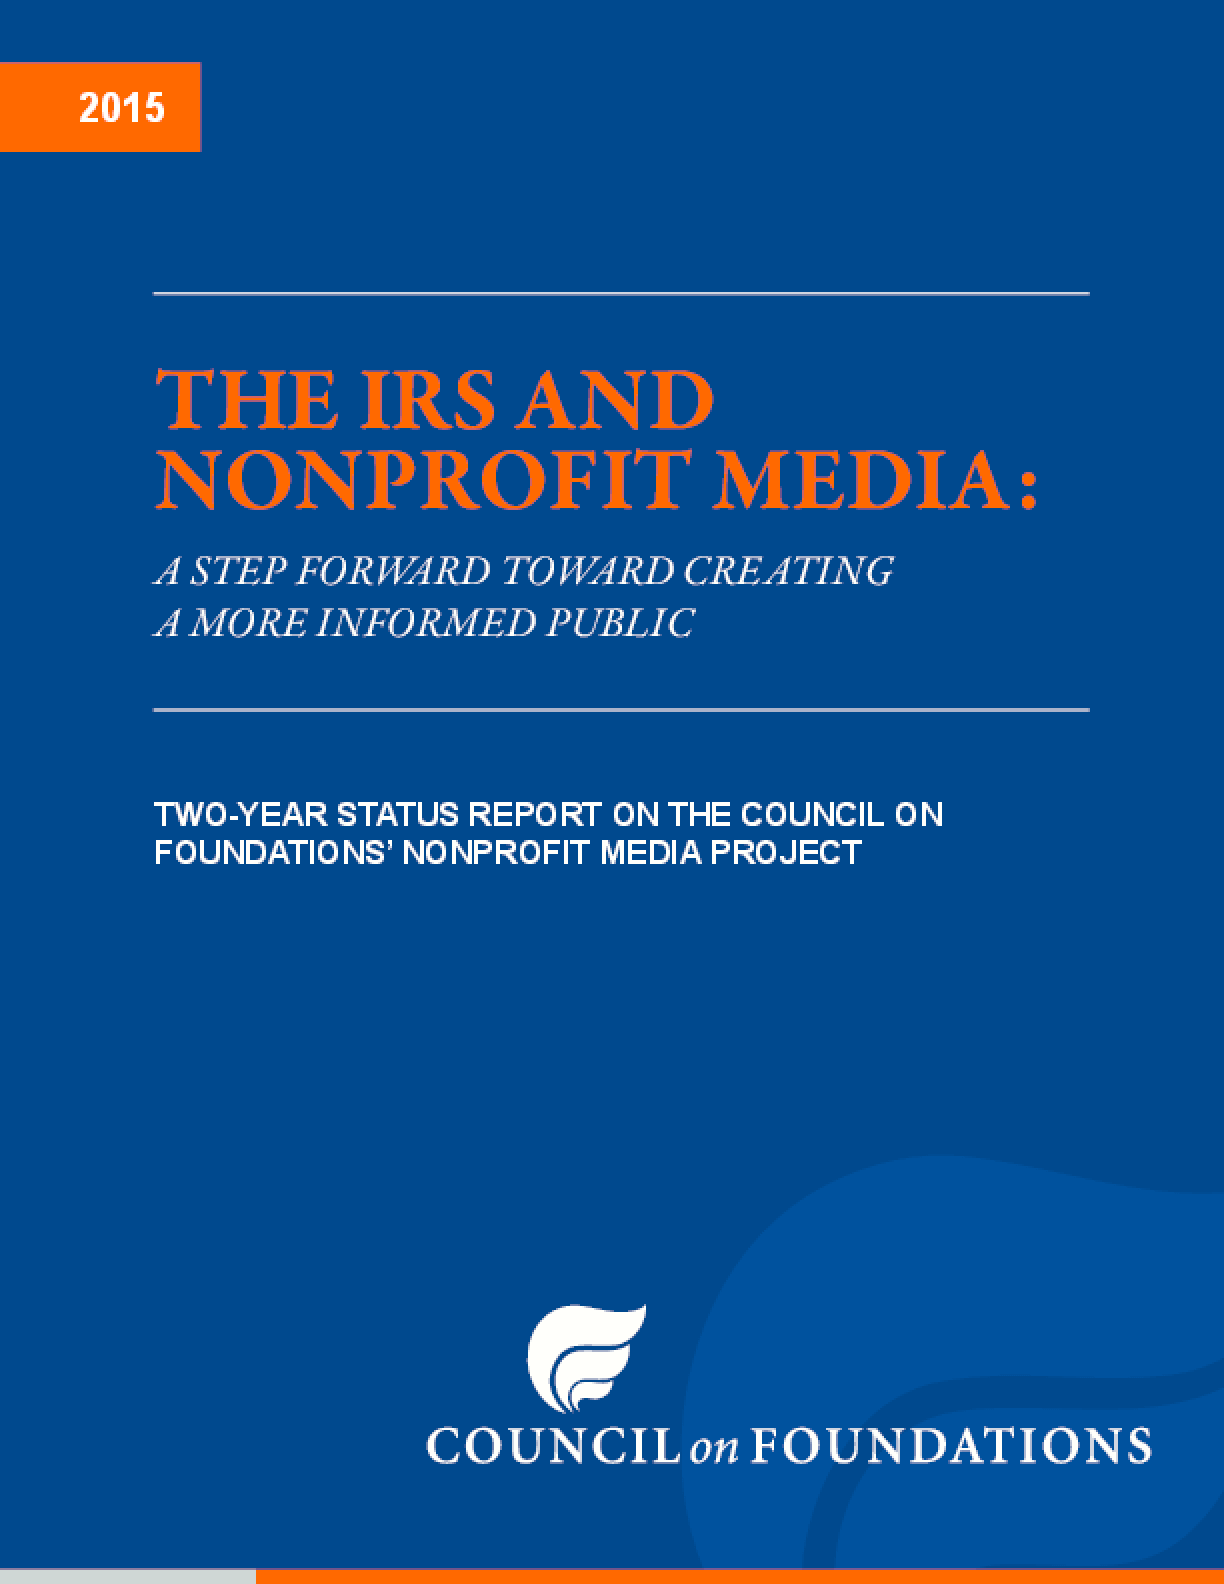 The IRS and Nonprofit Media: A Step Forward Toward Creating a More Informed Public